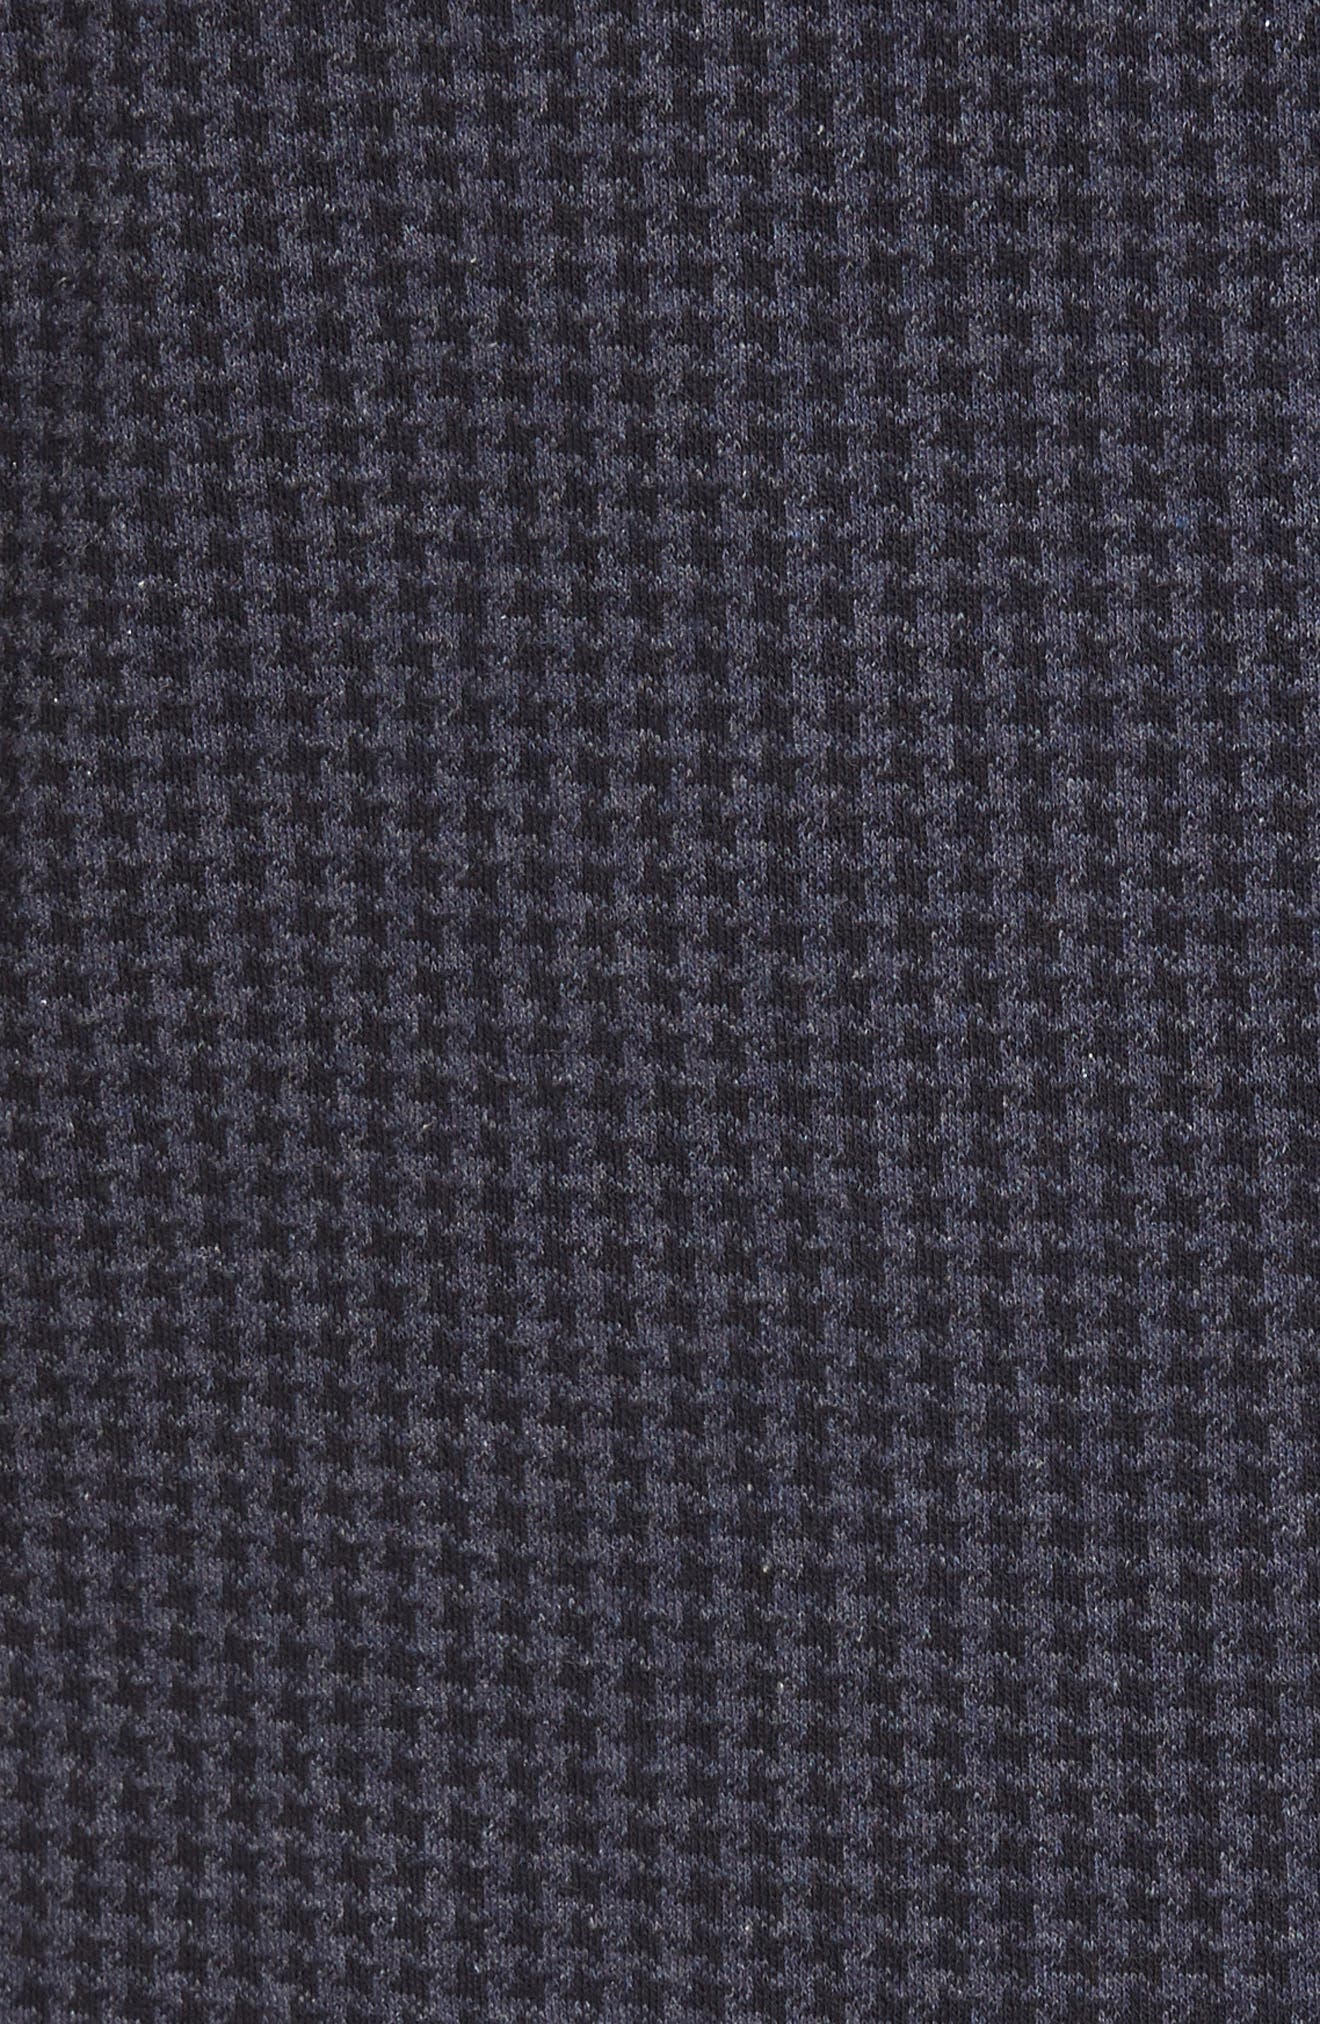 Houndstooth Cotton Knit Blazer,                             Alternate thumbnail 5, color,                             Navy